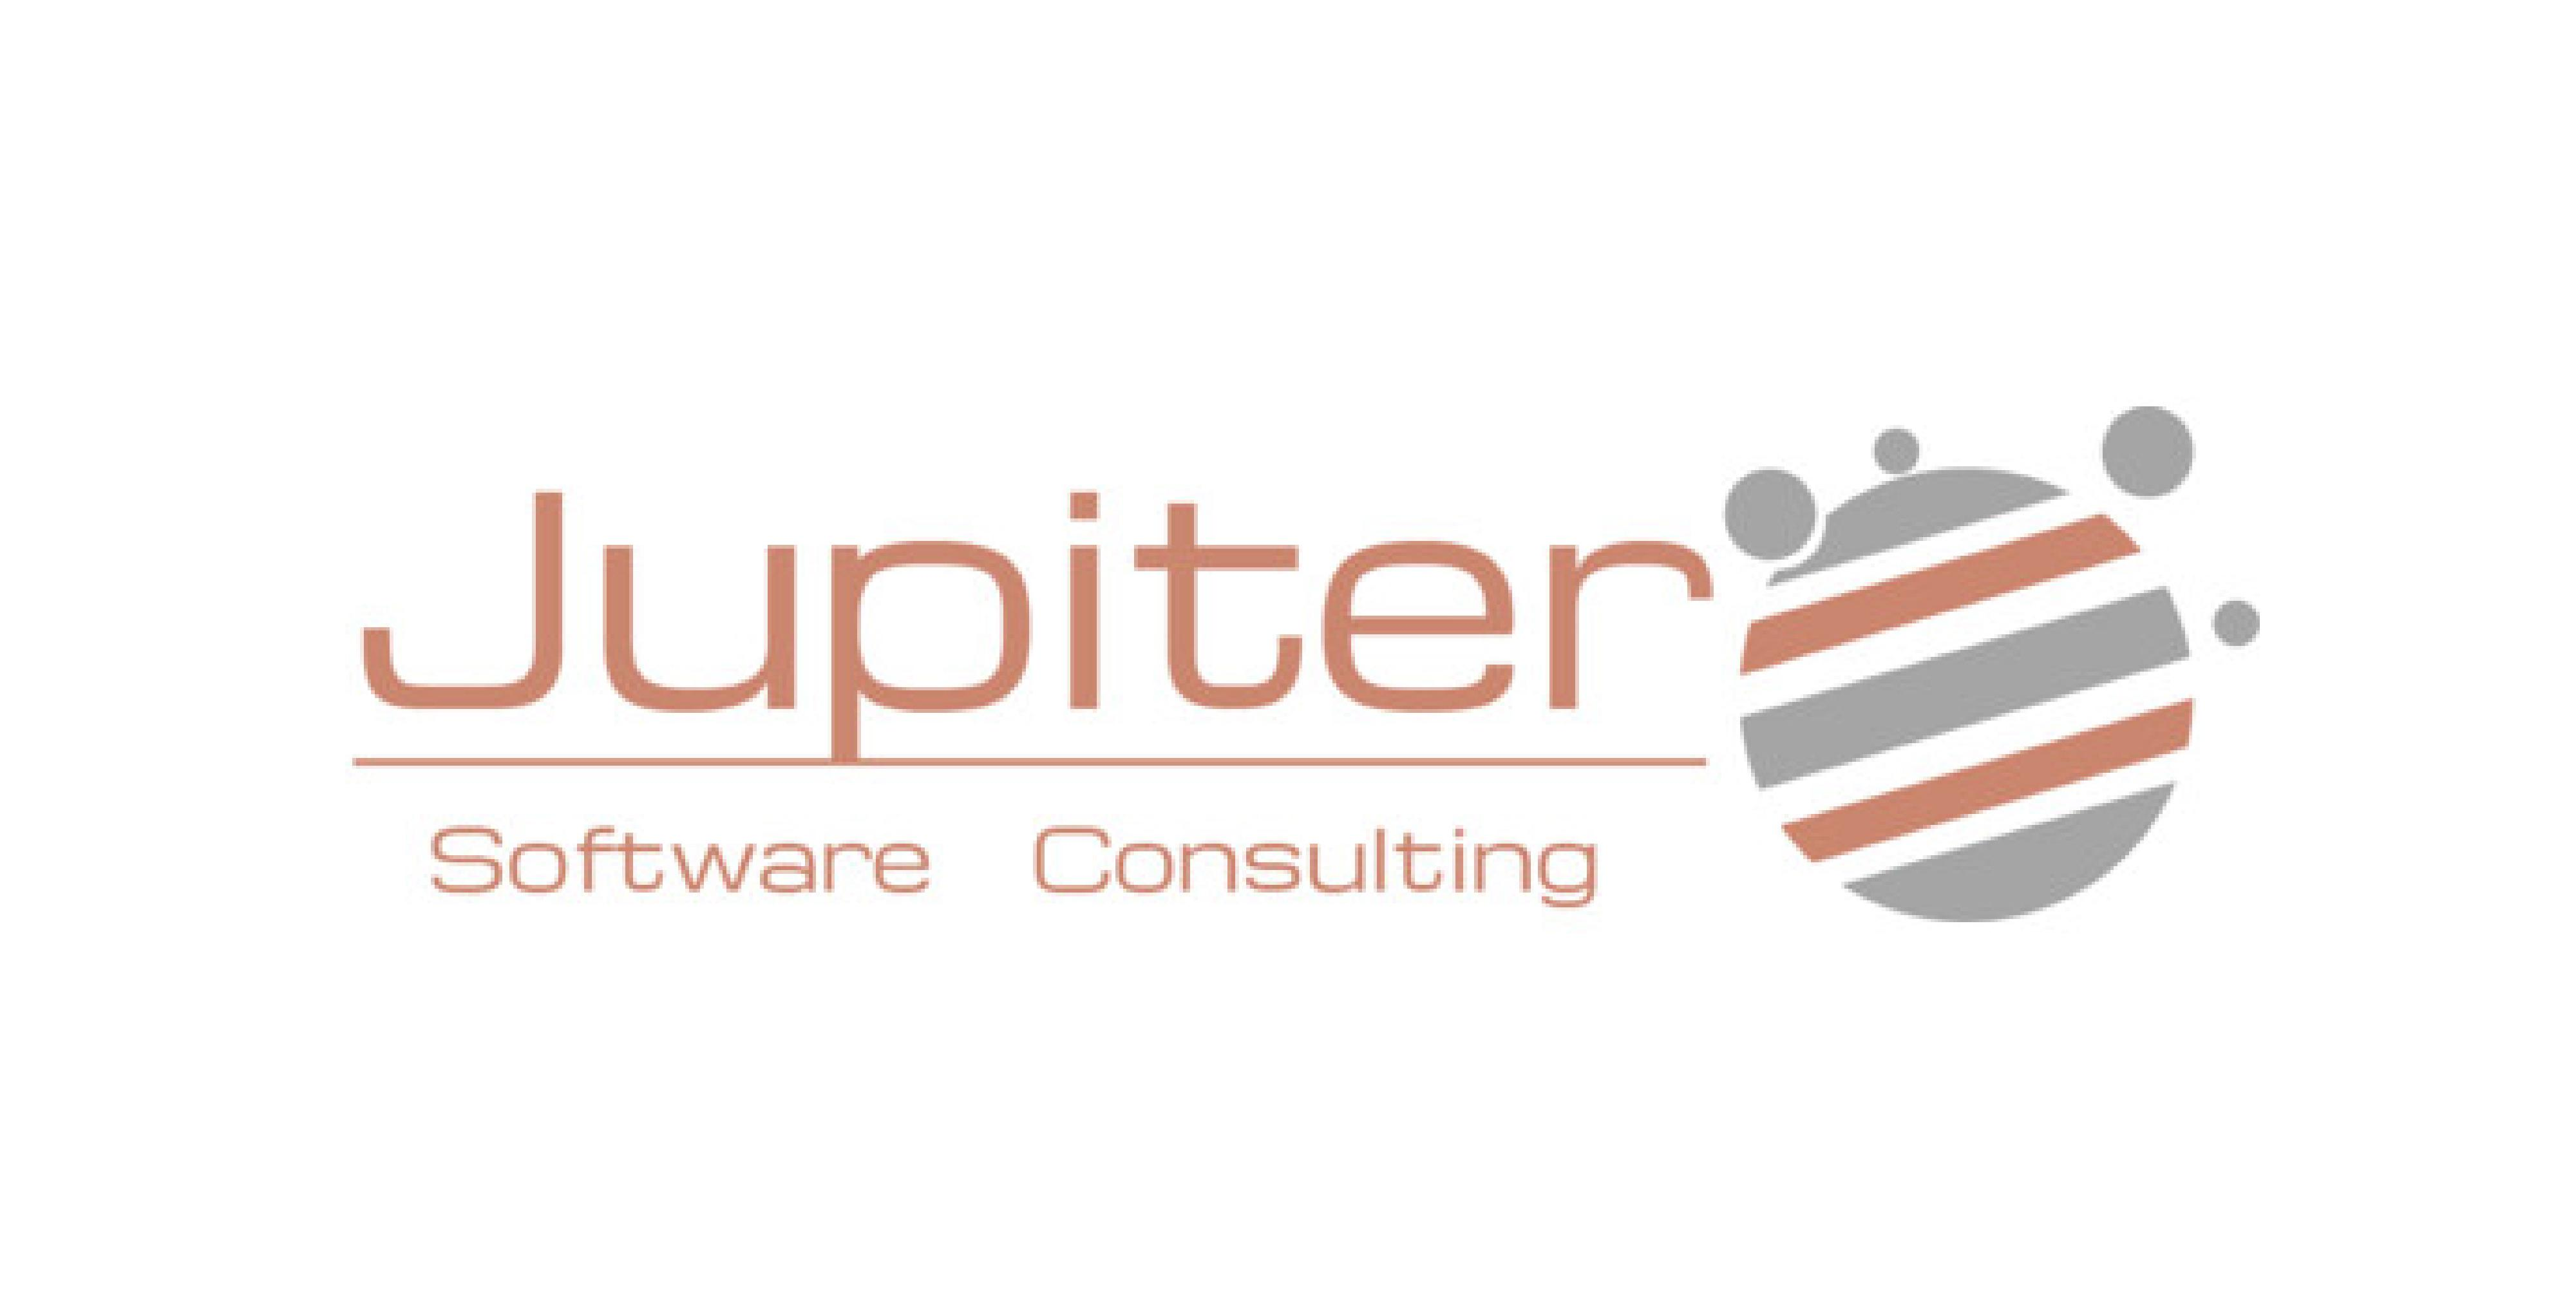 Jupiter Software Consulting